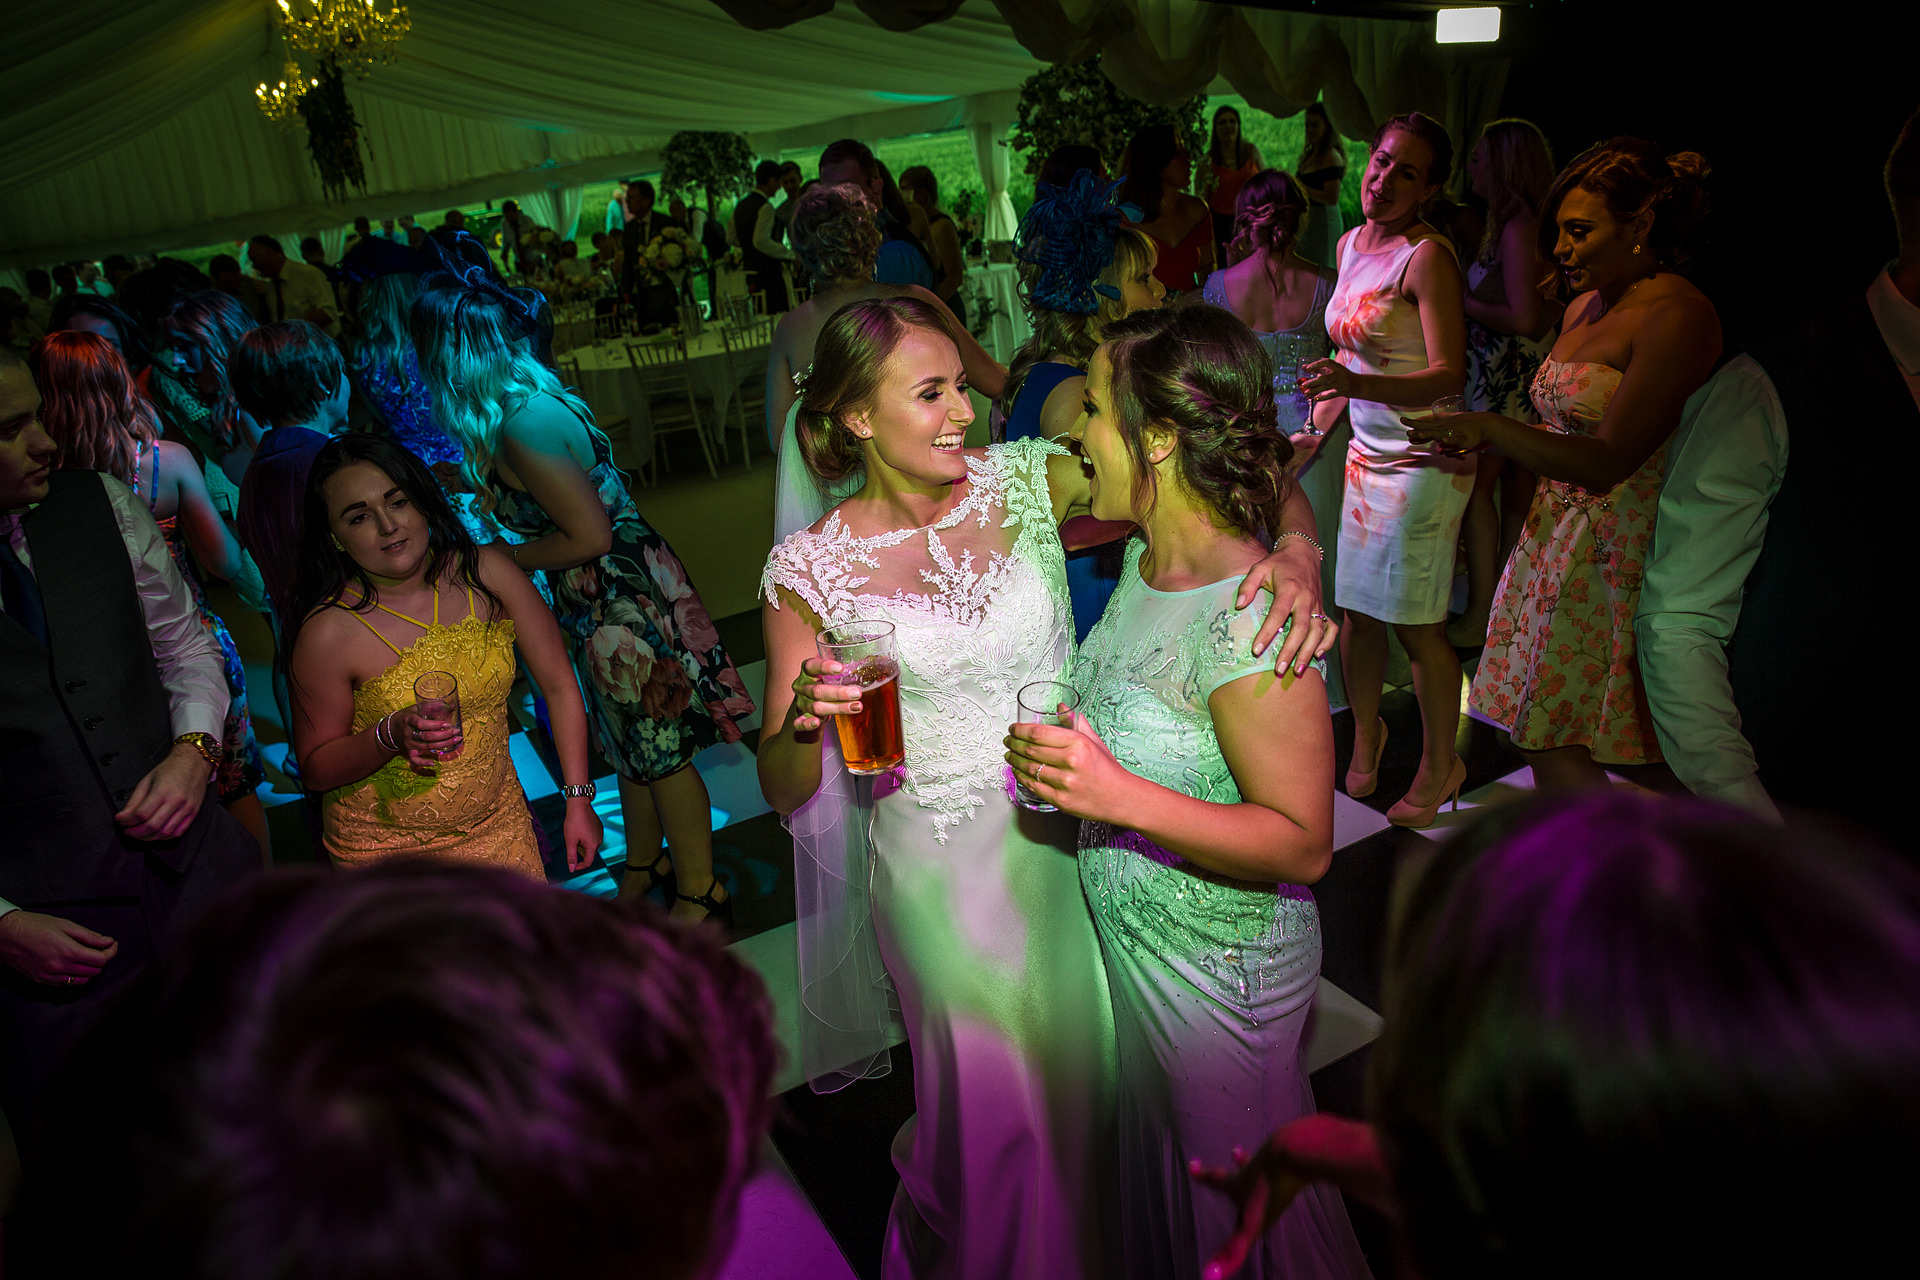 bride dancing with guests at wedding